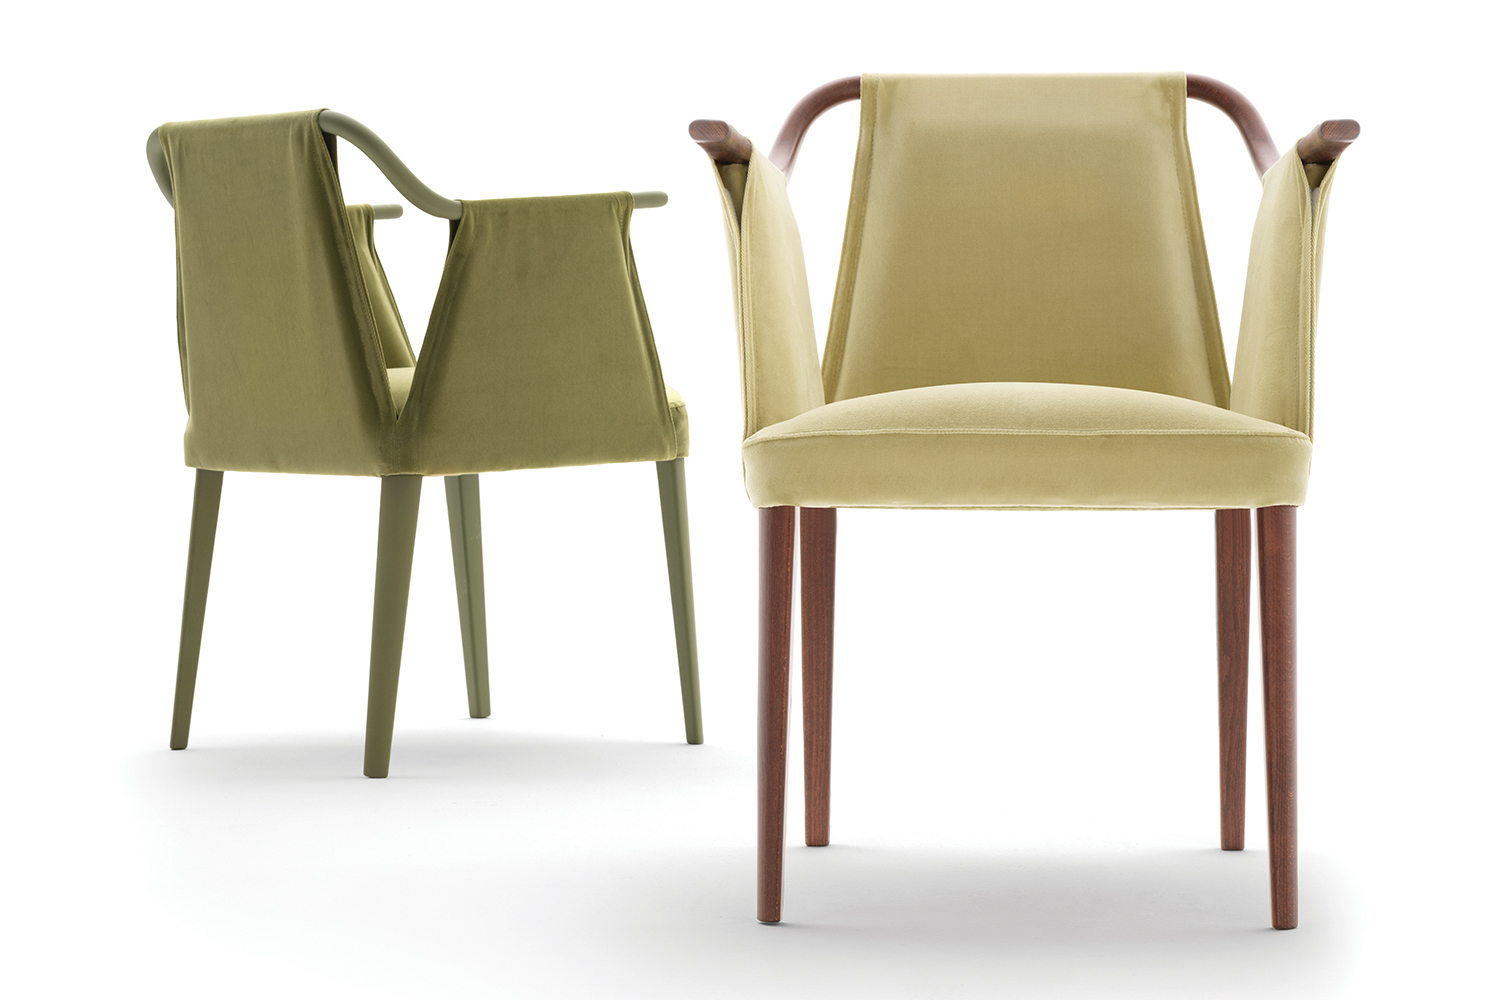 Sayo forms a continuous silhouette since the armchair's upholstery loops through a slender Beech frame to form armrests.